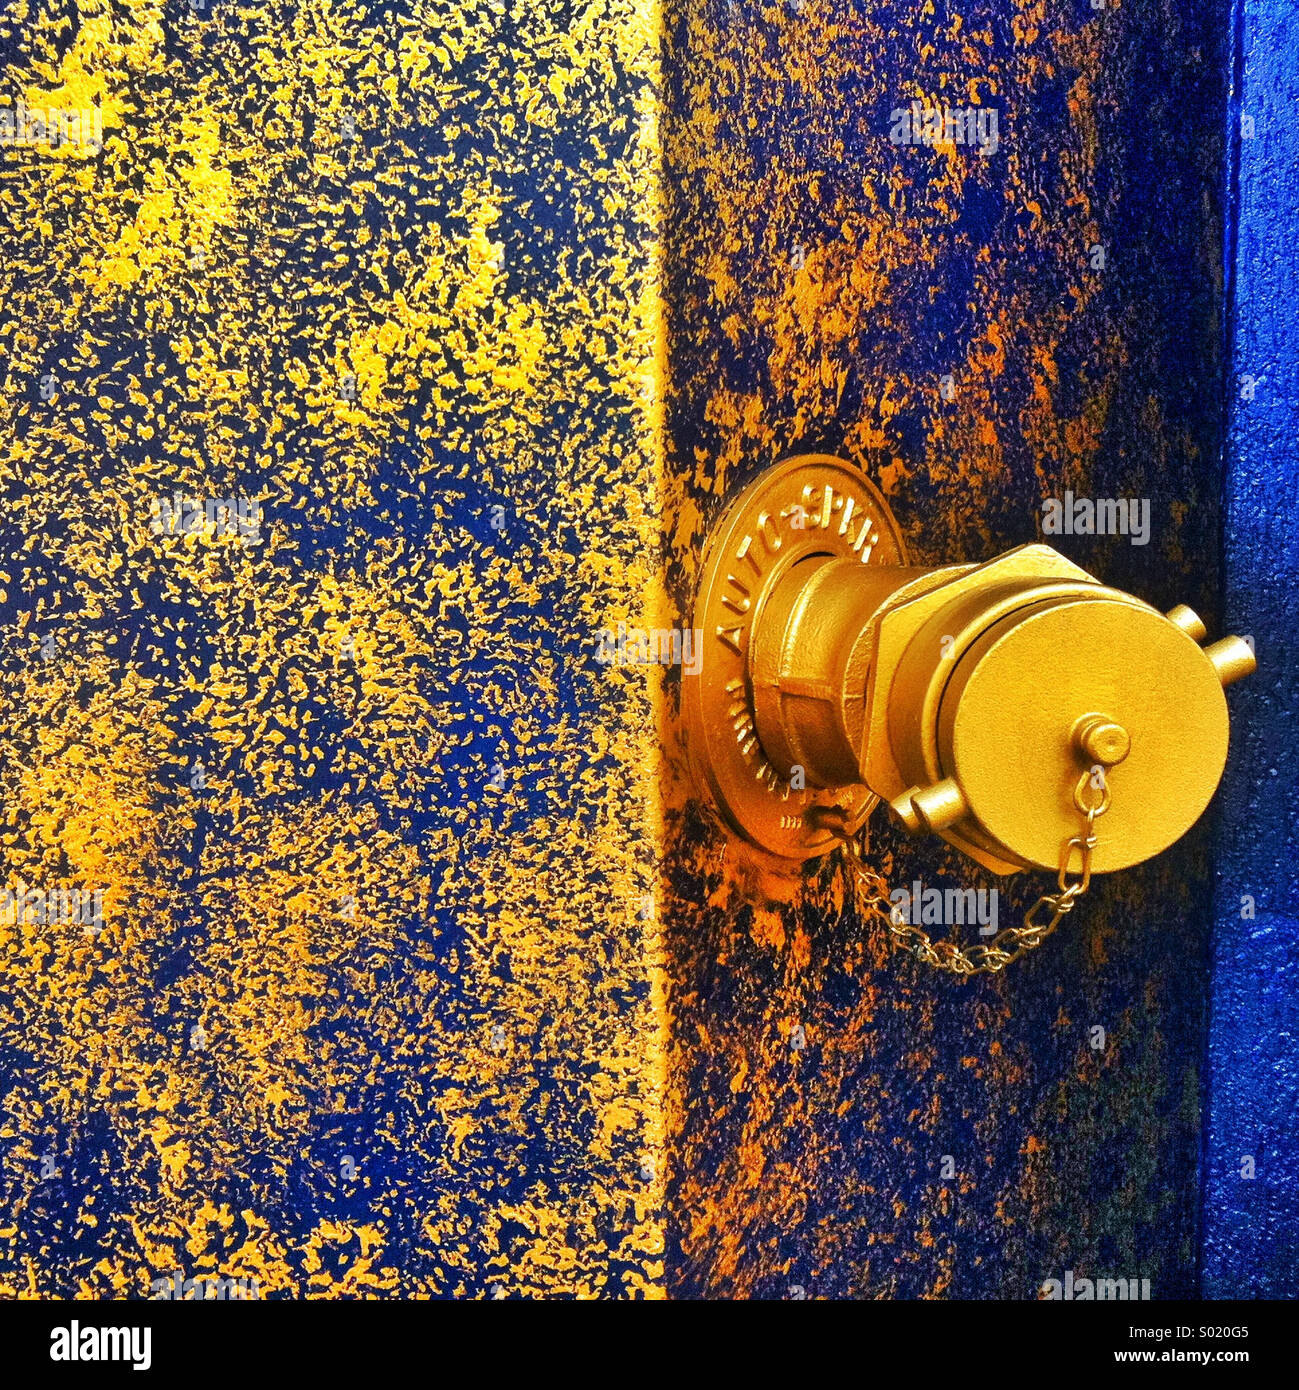 A gold water spigot protrudes from a blue  building painted with gold paint - Stock Image